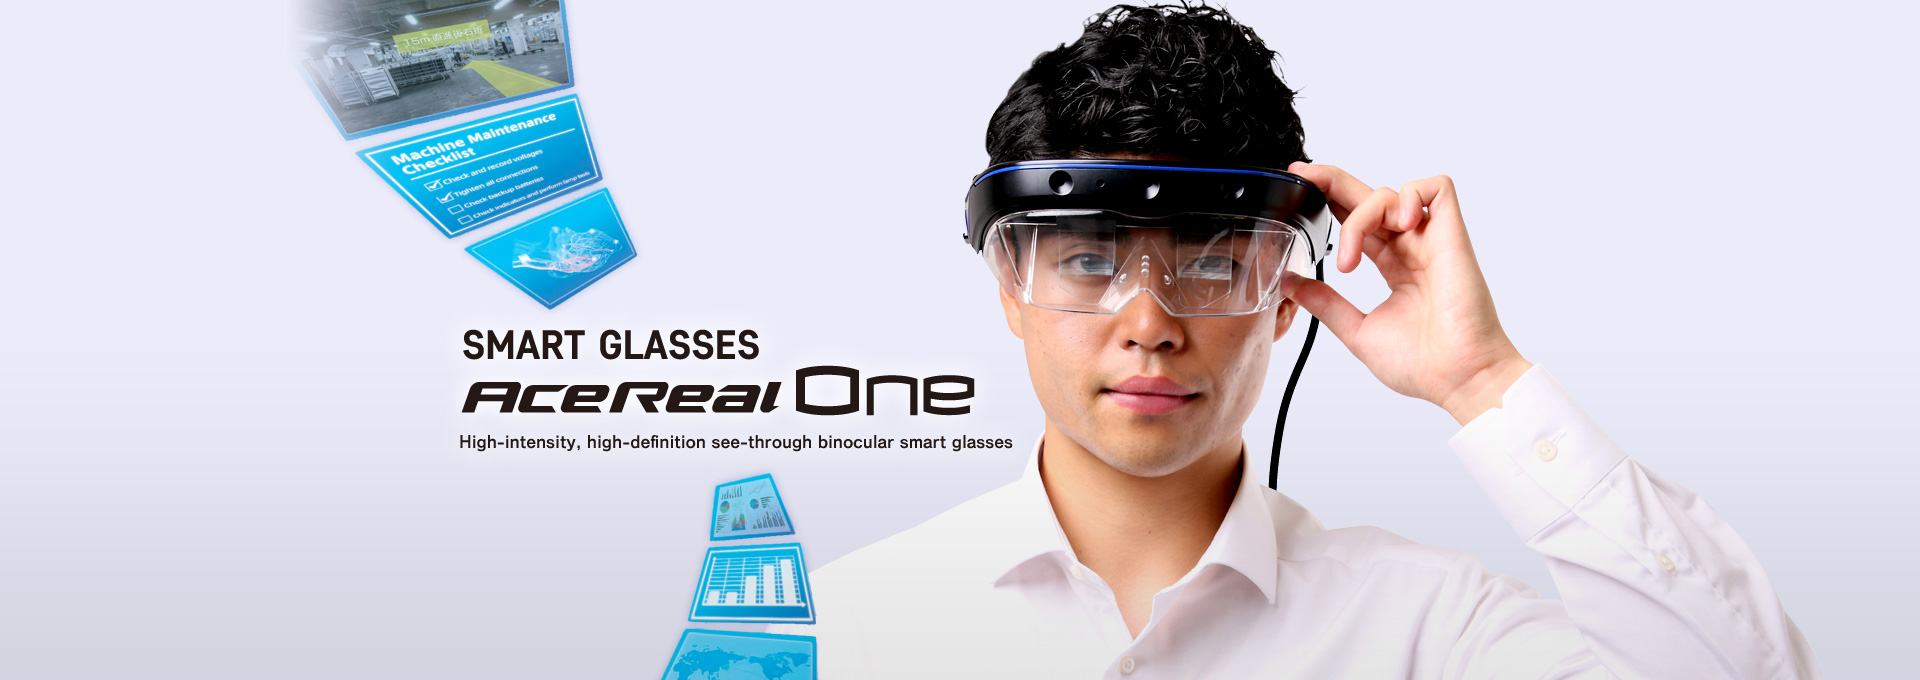 SMART GLASSES AceReal One High-intensity, high-definition see-through binocular smart glasses